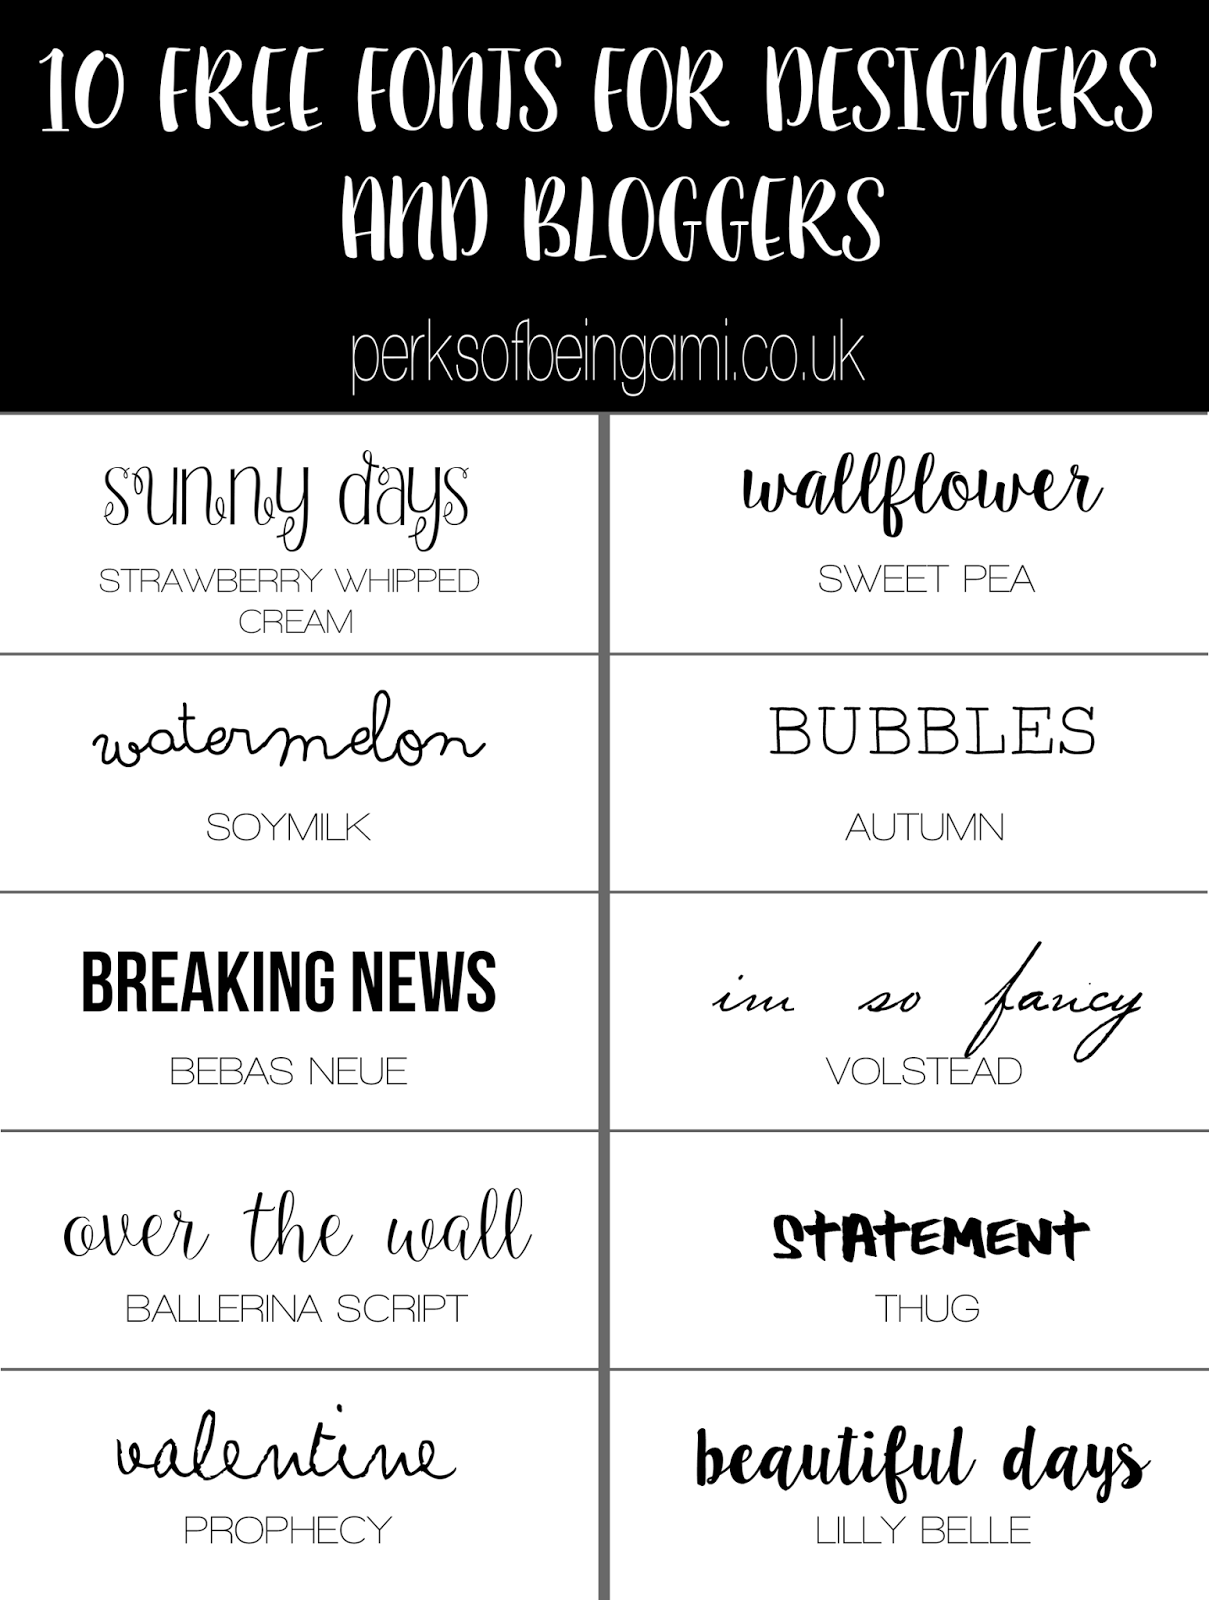 10 FREE FONTS FOR DESIGNERS AND BLOGGERS